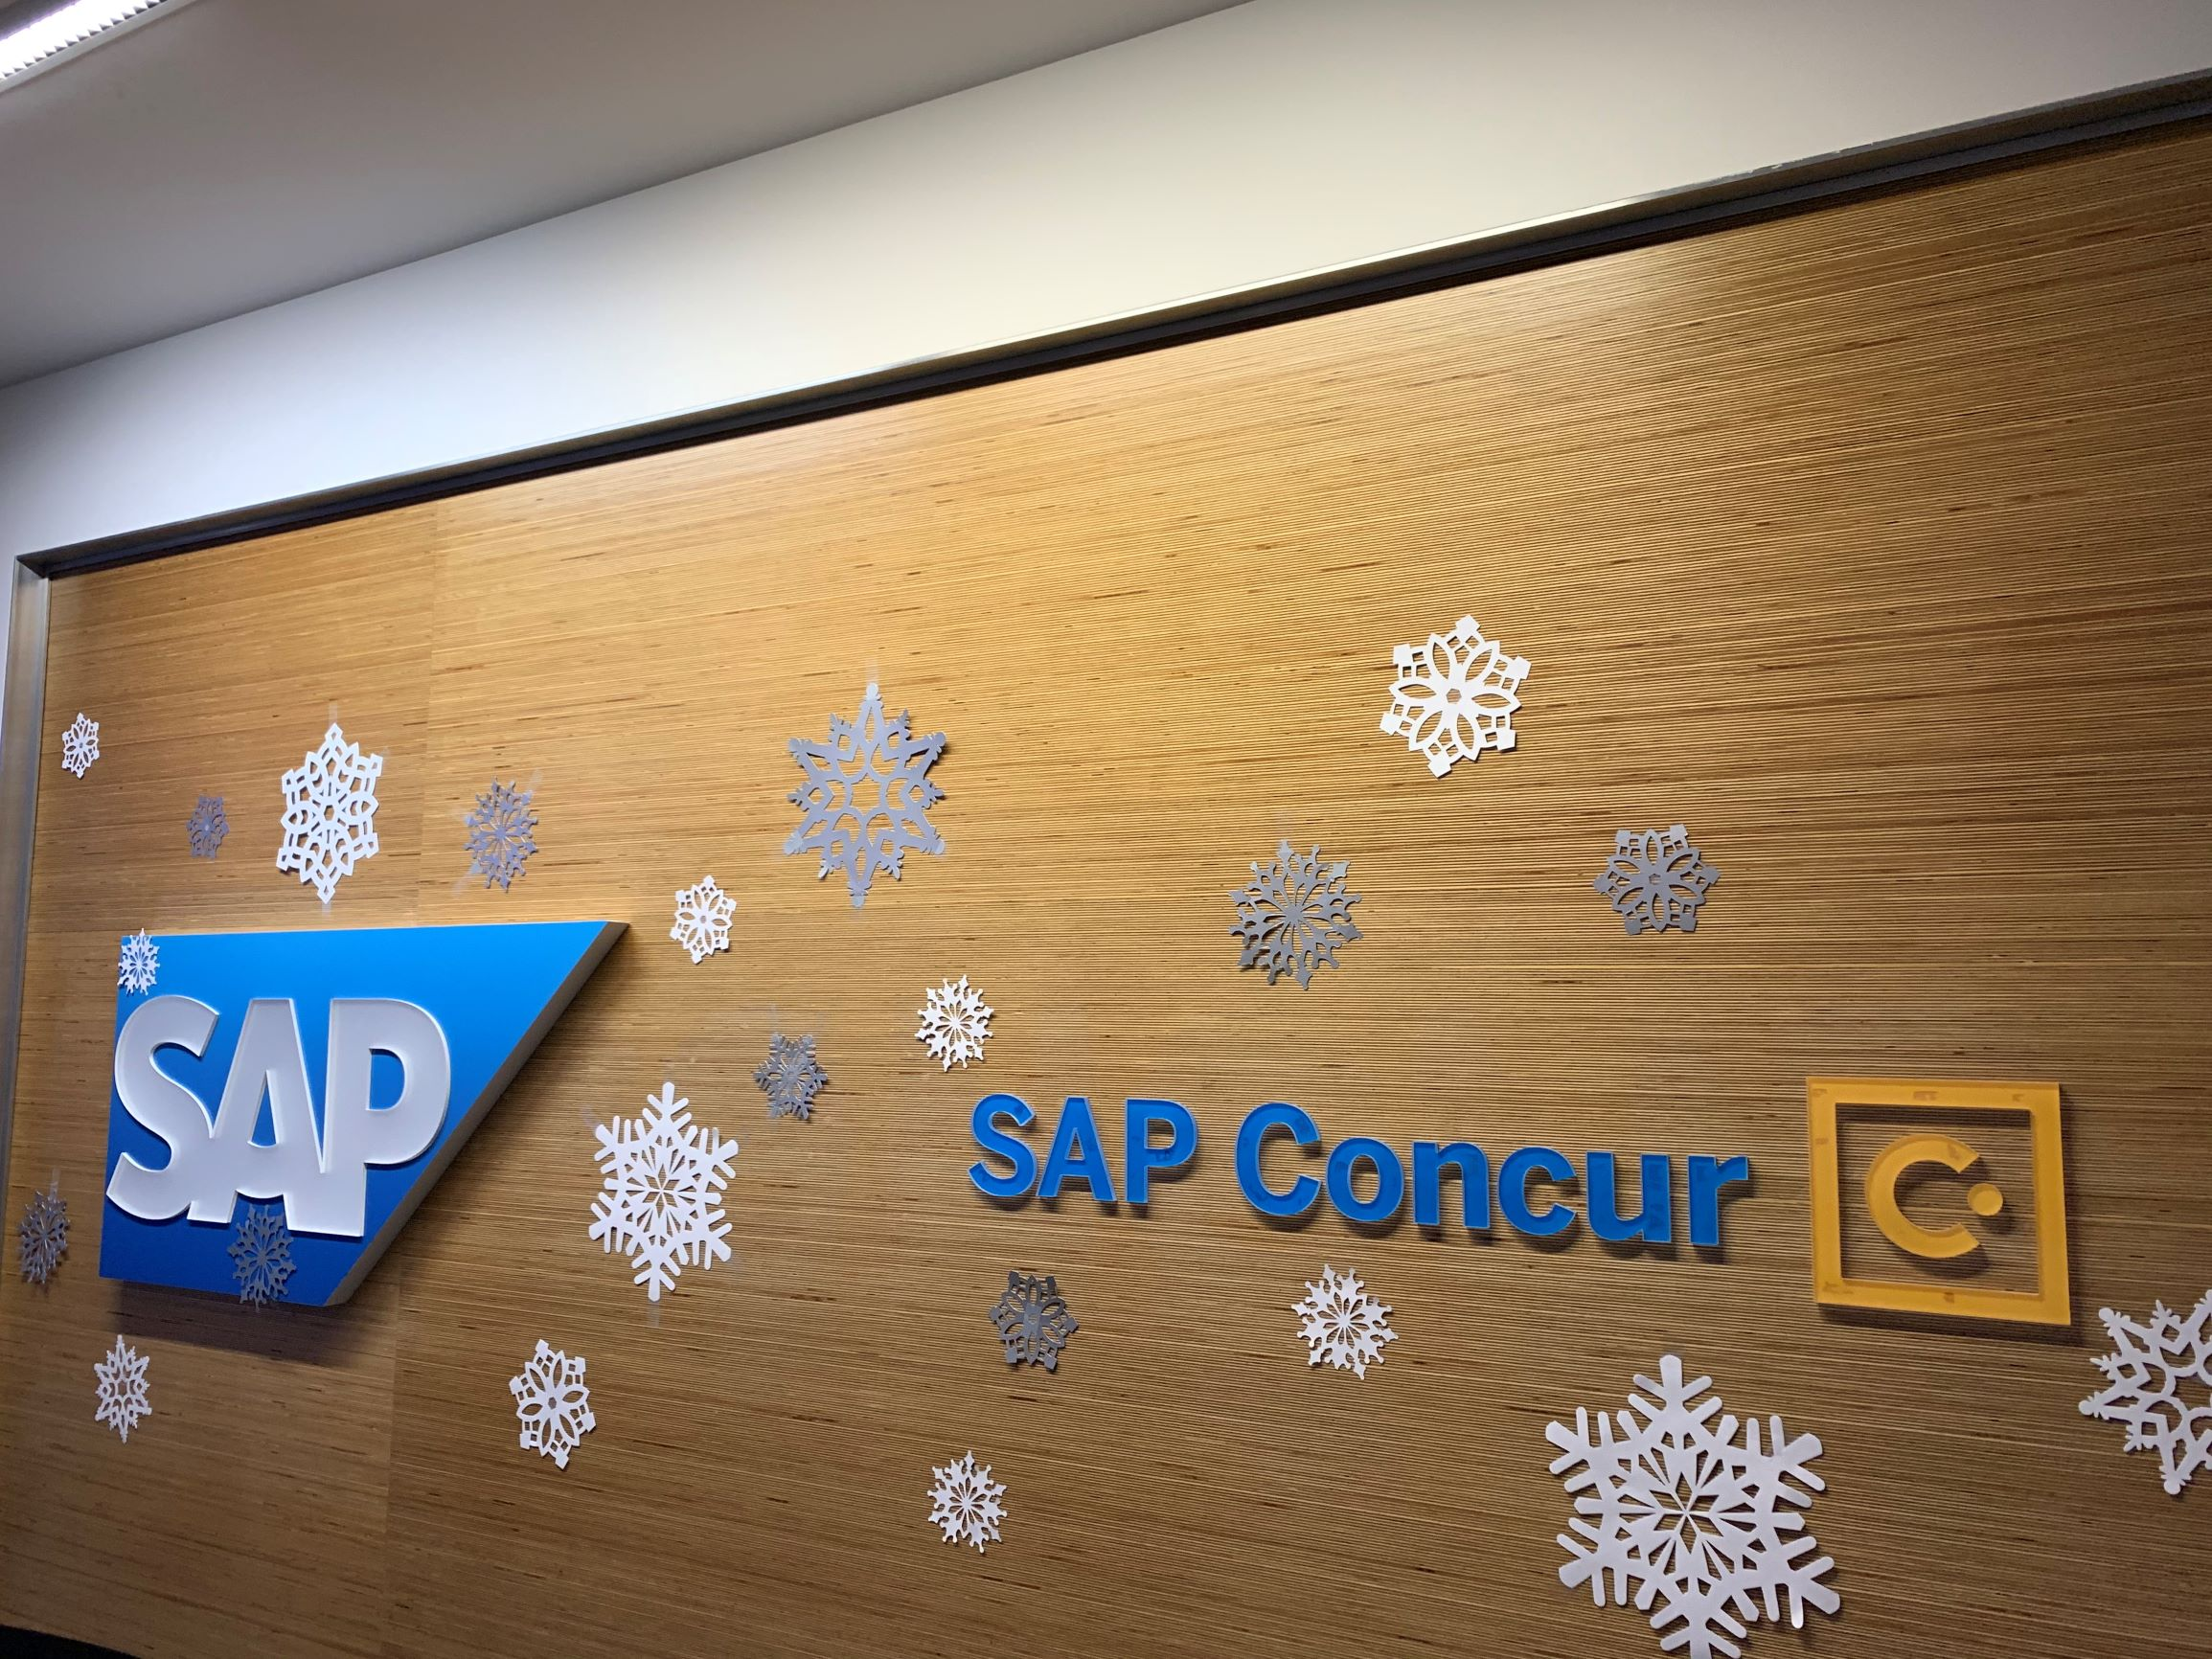 SAP Concur decorates office for the Holidays